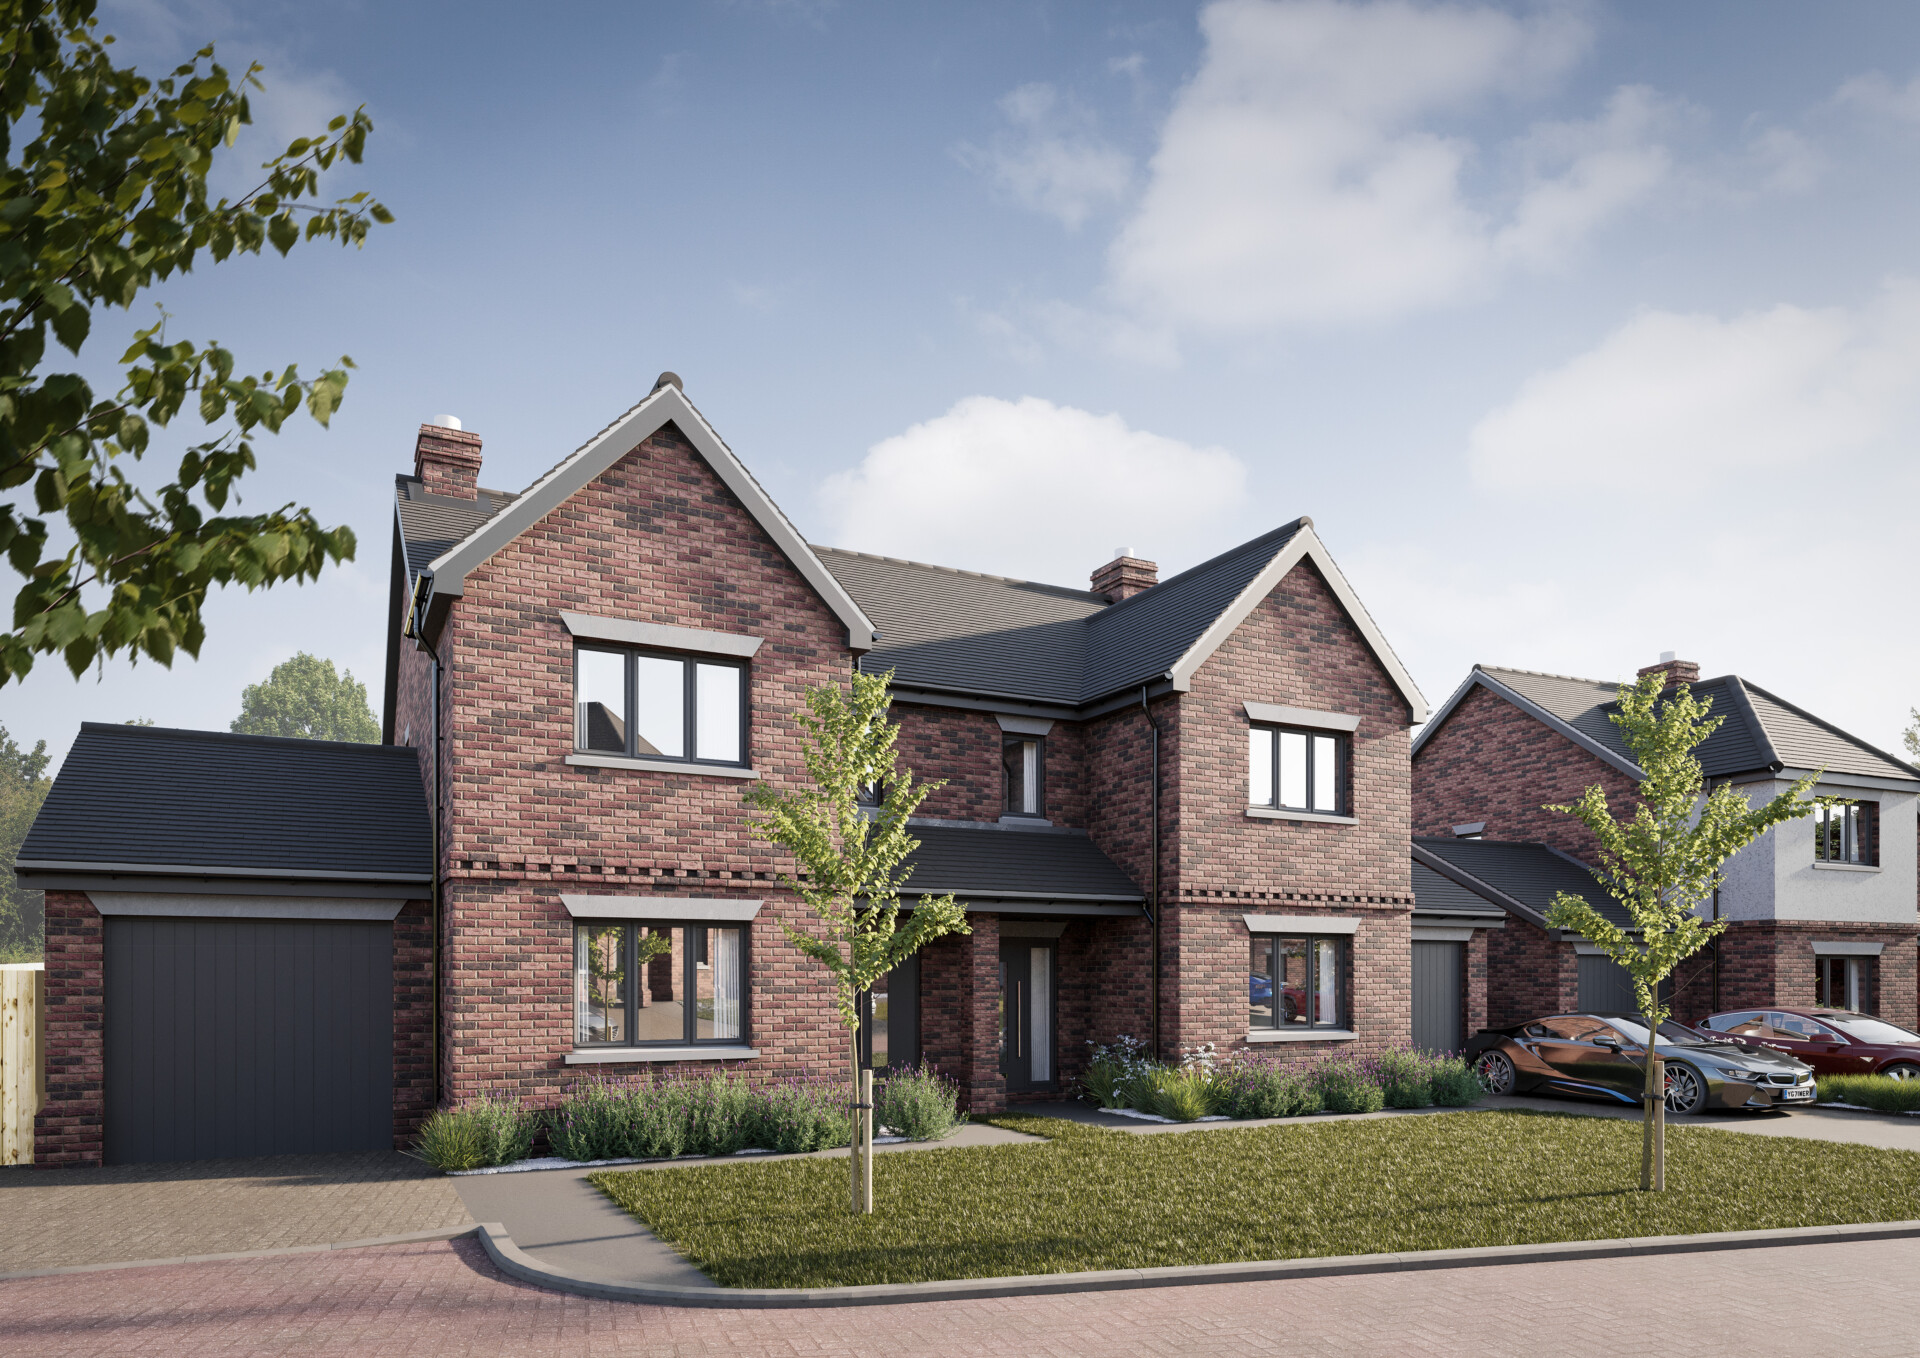 Plot 5 Townsend Meadows Ashwell, Four bedroom 2.5 storey Semi-Detached home in Hertfordshire village